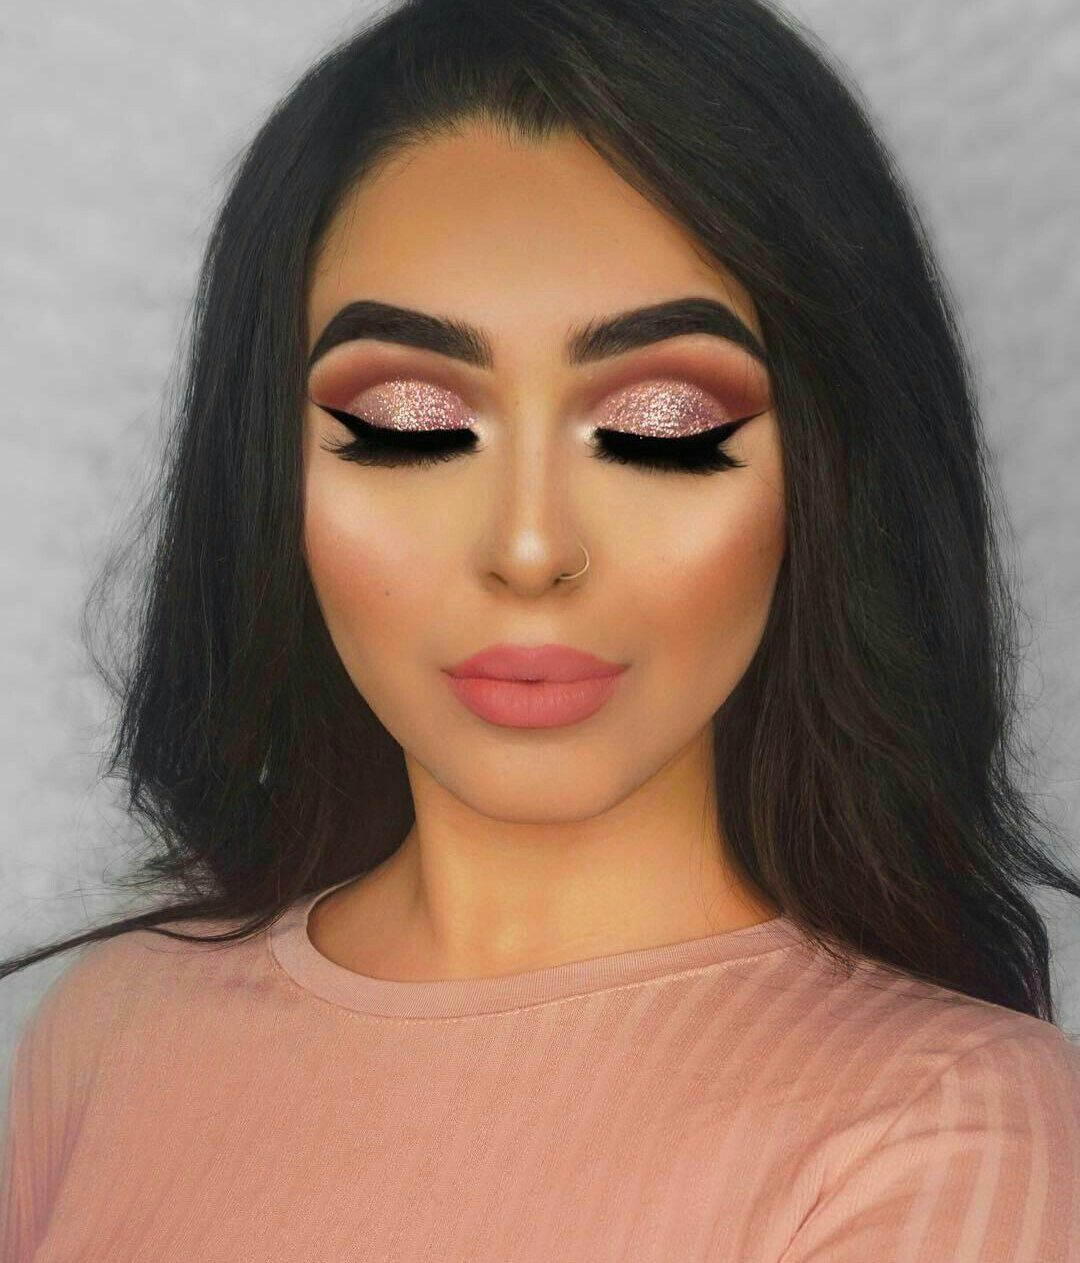 Pin by 🎀Dianna Mendoza💋 on caked up makeup